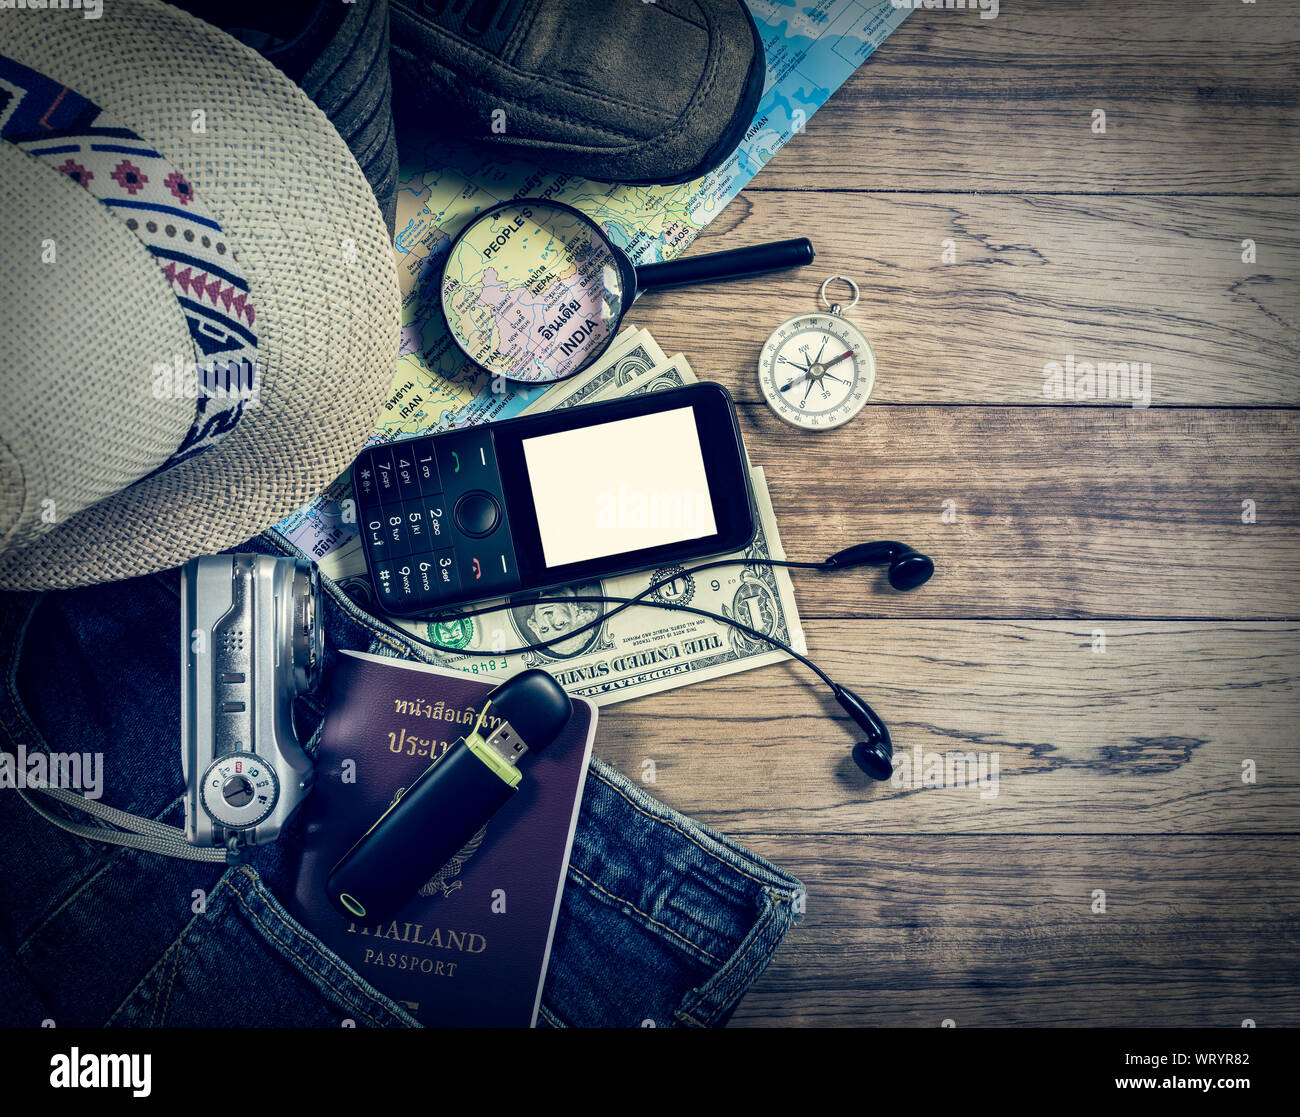 Set of travel accessory with mobile phone on wooden vintage background. Stock Photo